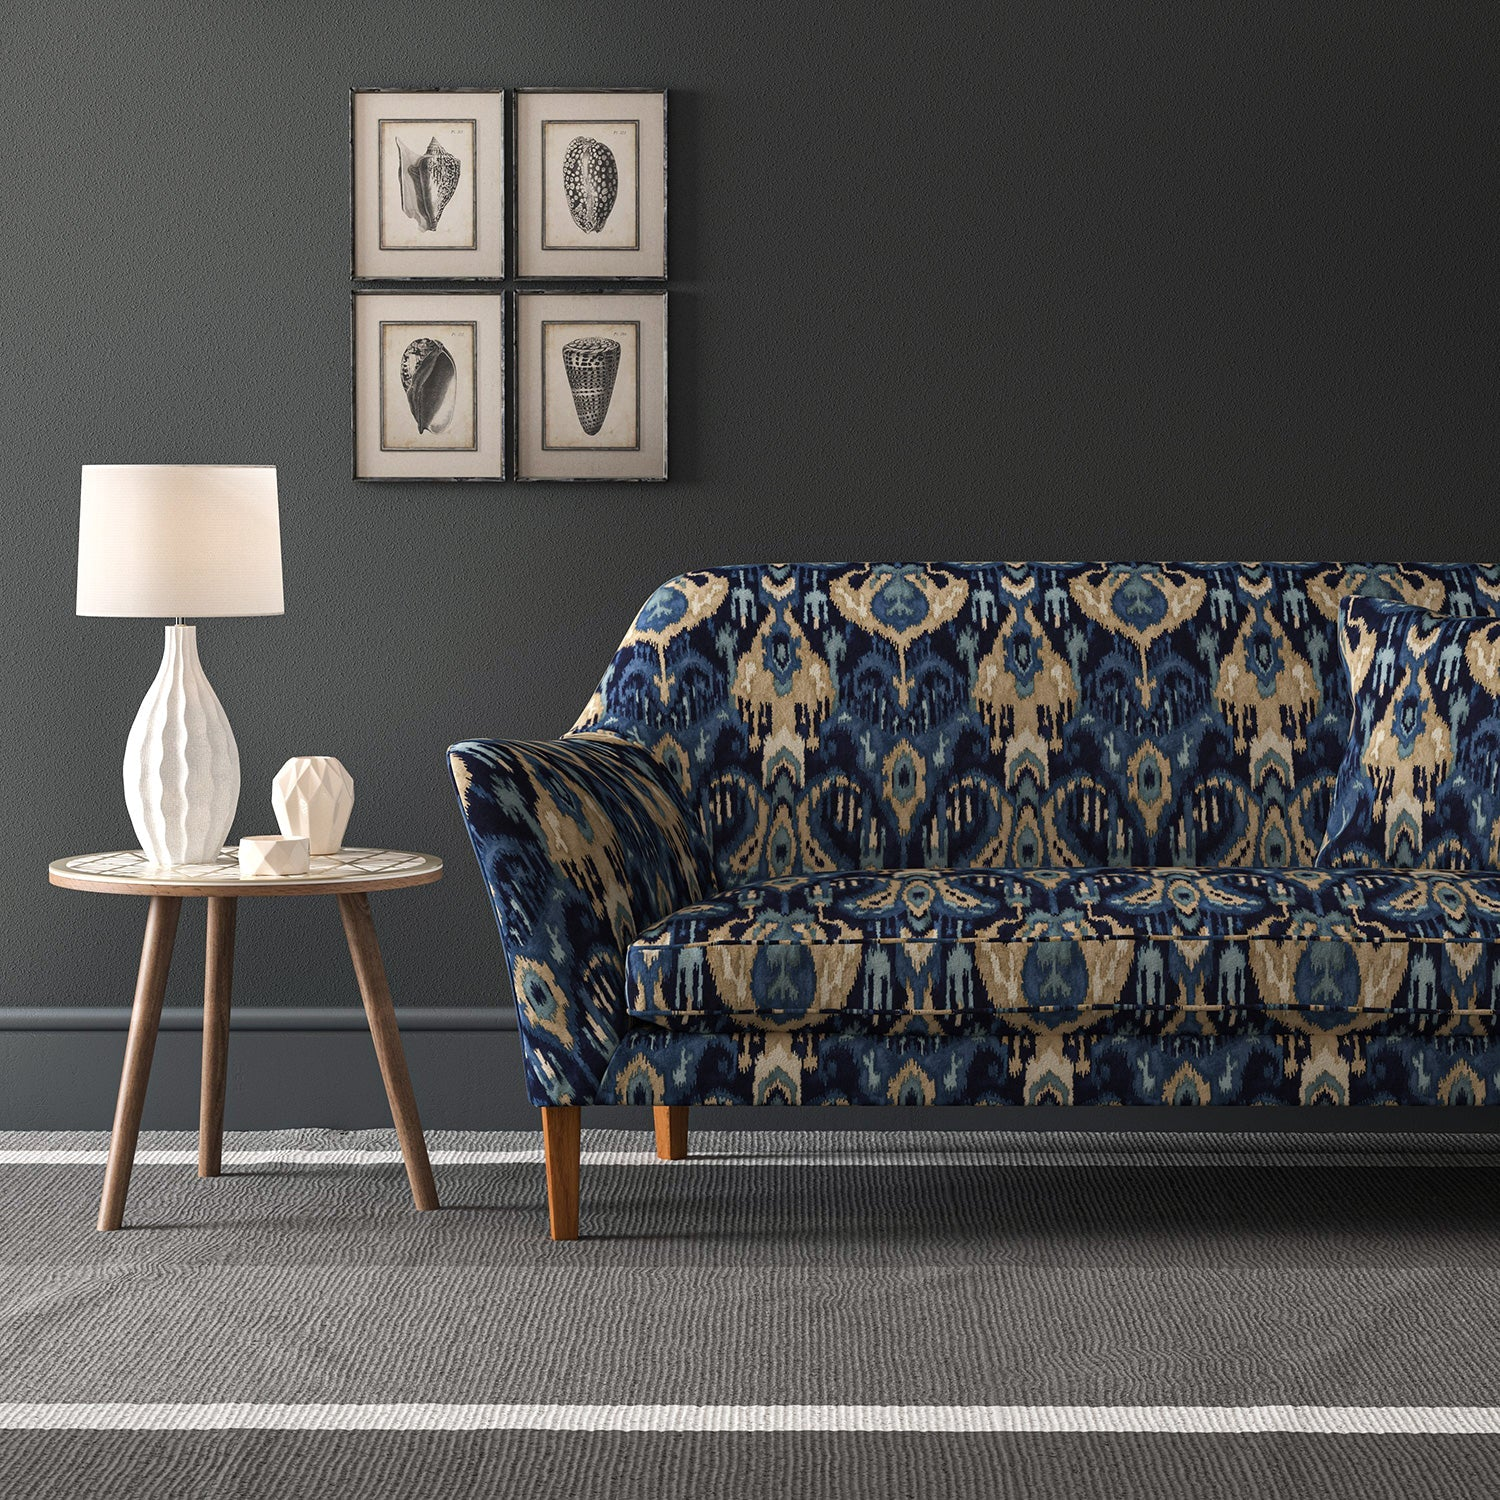 Velvet sofa upholstered in a stain resistant velvet fabric with contemporary abstract design